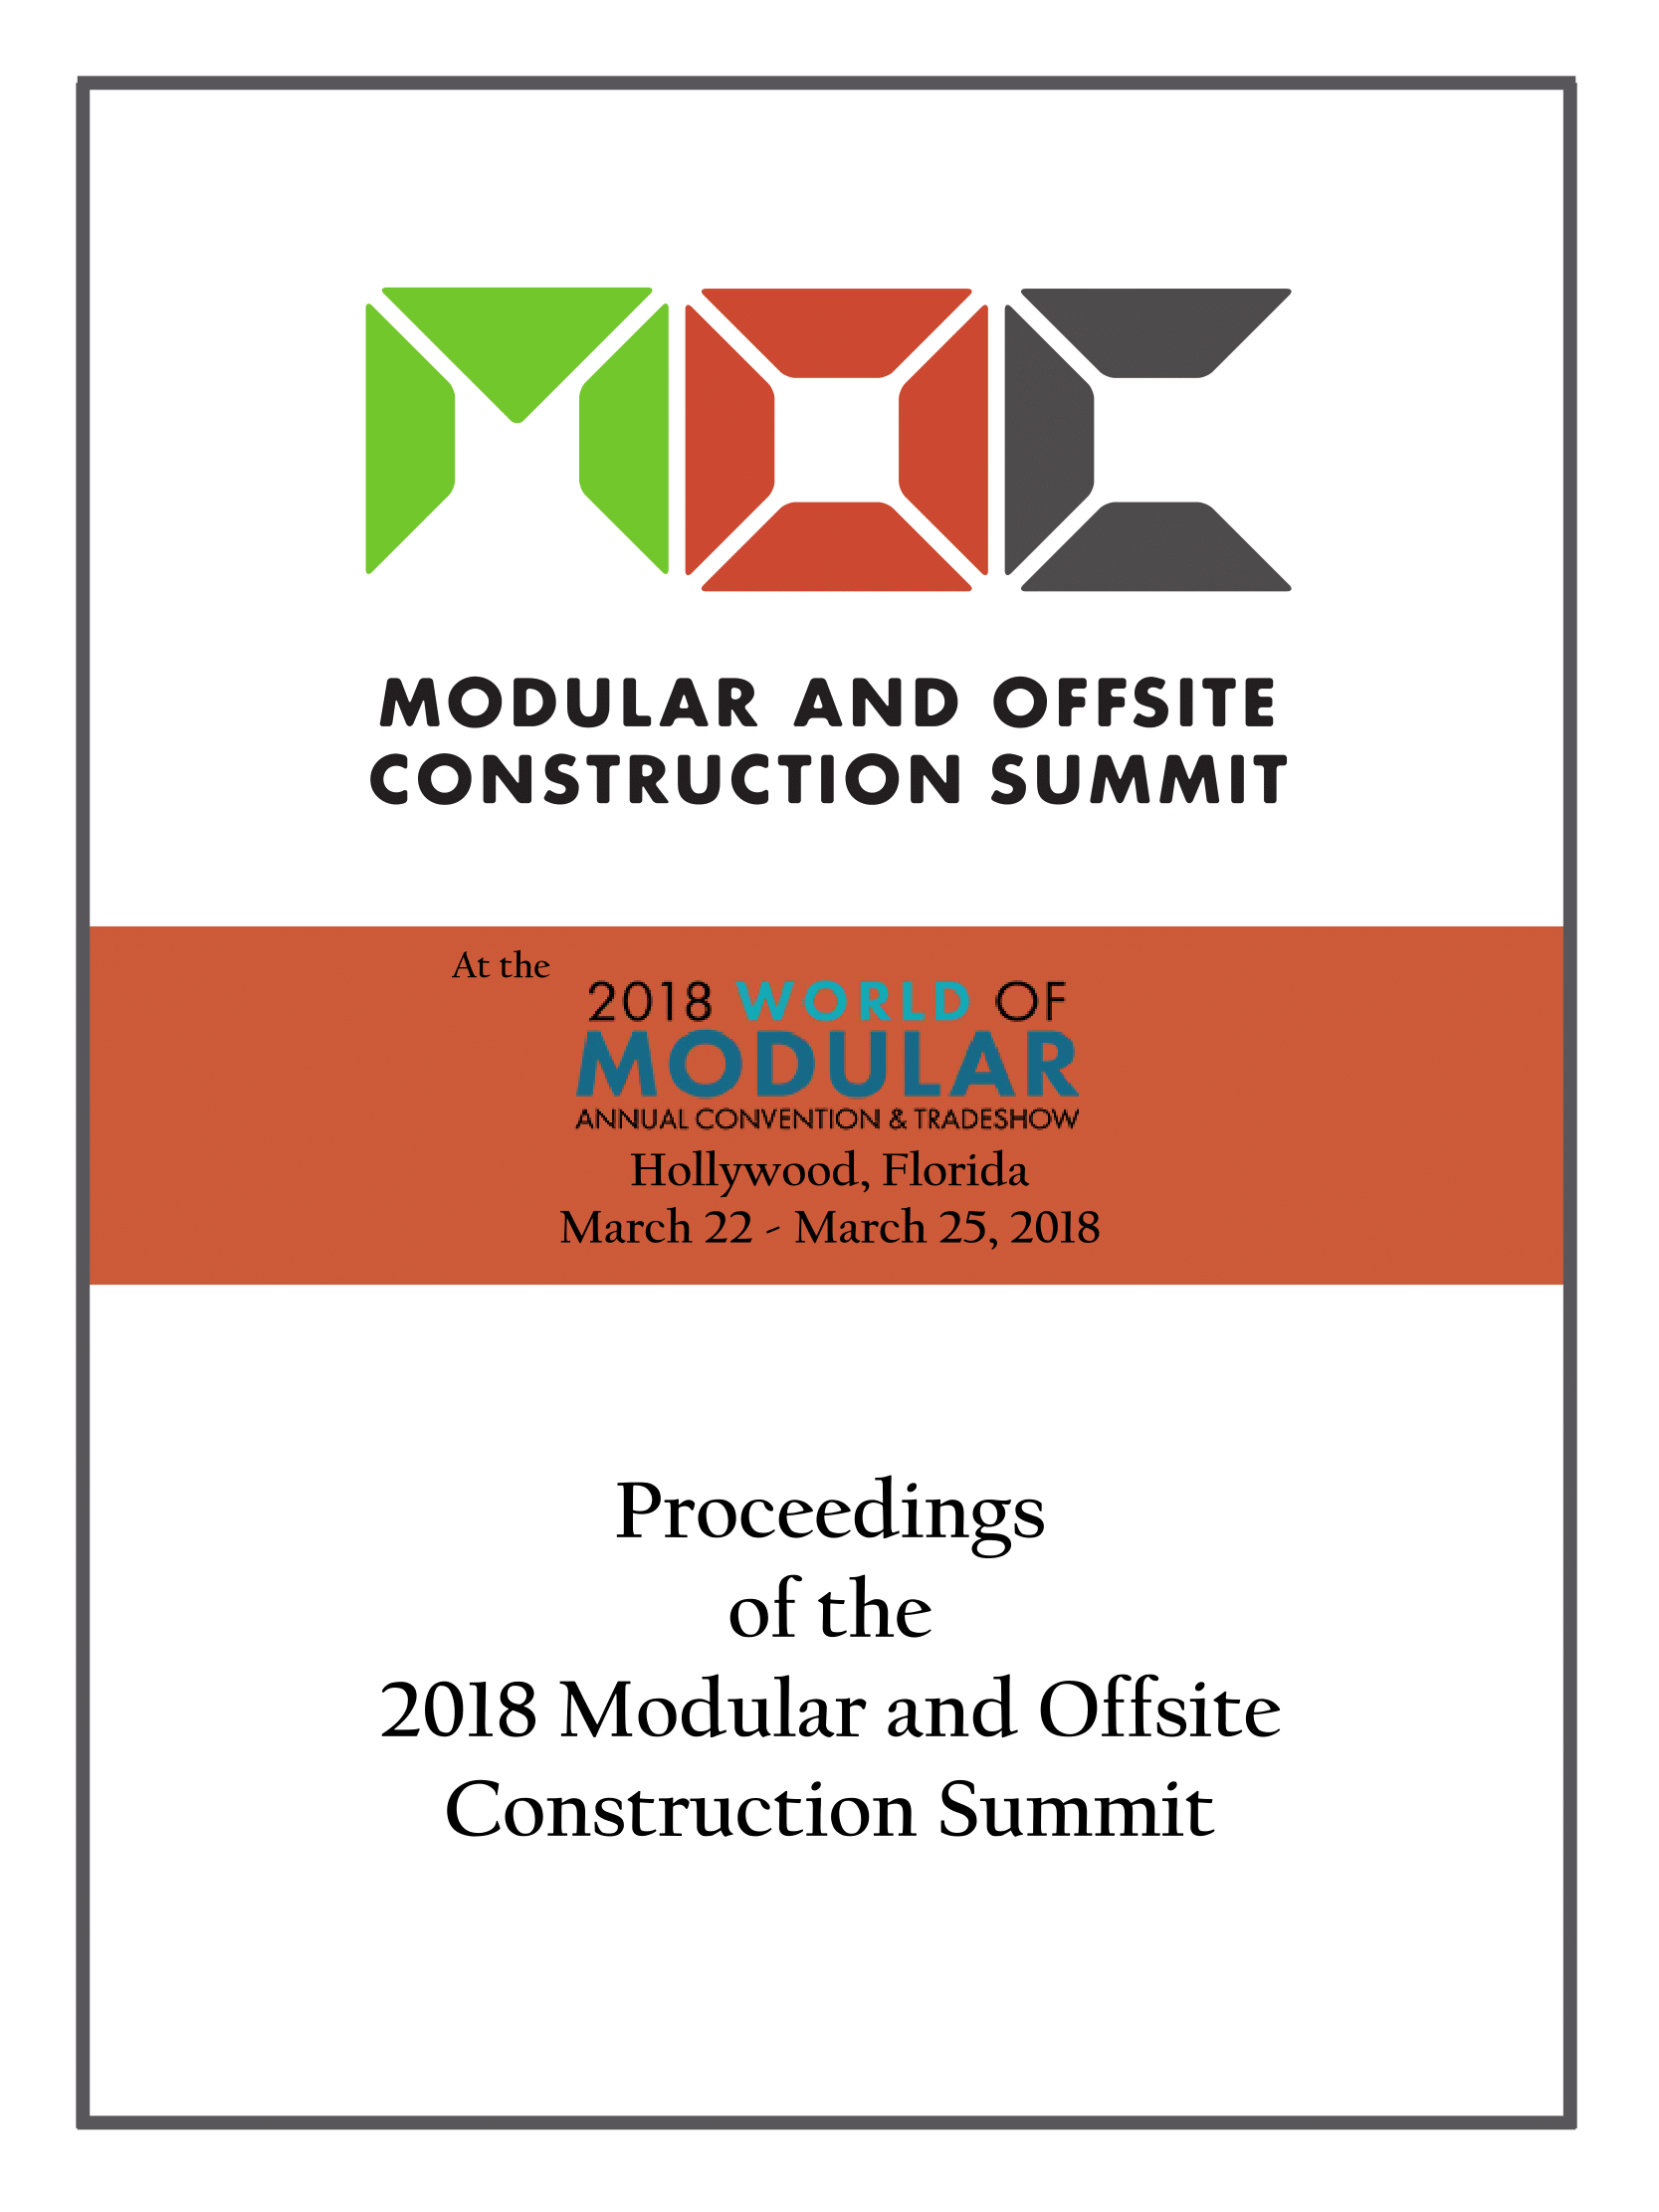 2018 Modular and Offsite Construction Summit Proceedings